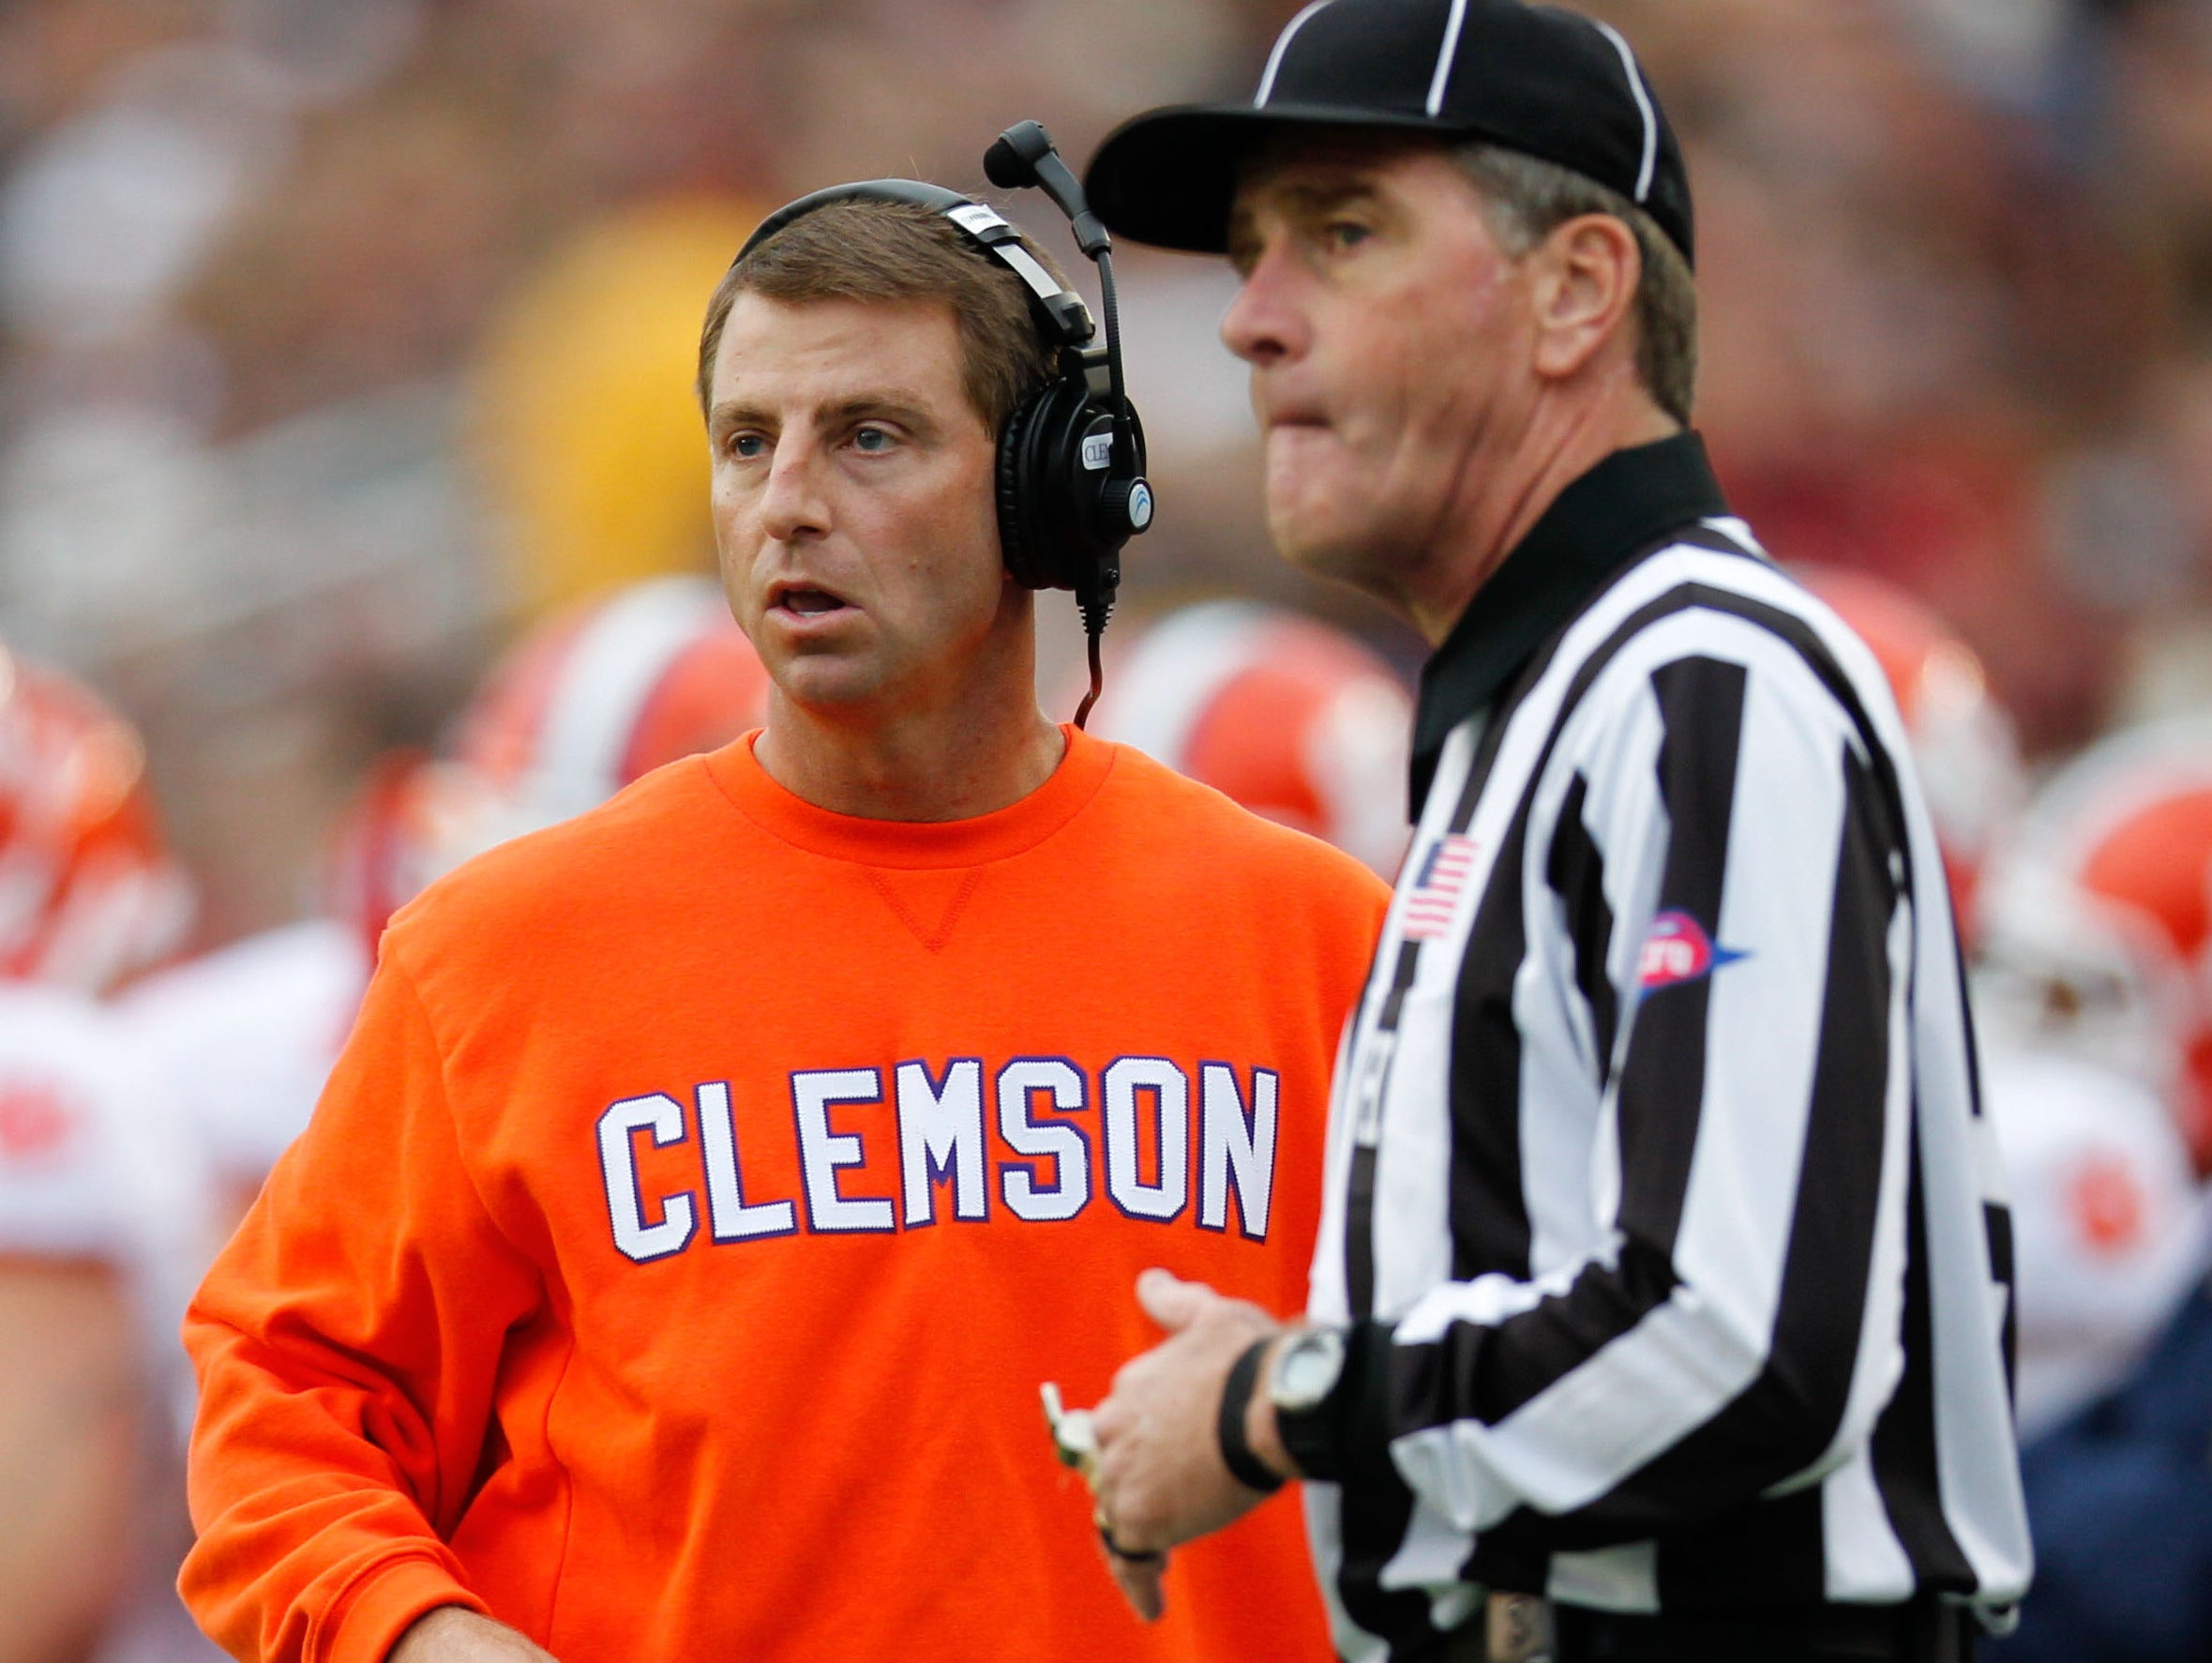 2012-09-29-dabo-swinney-clemson-football